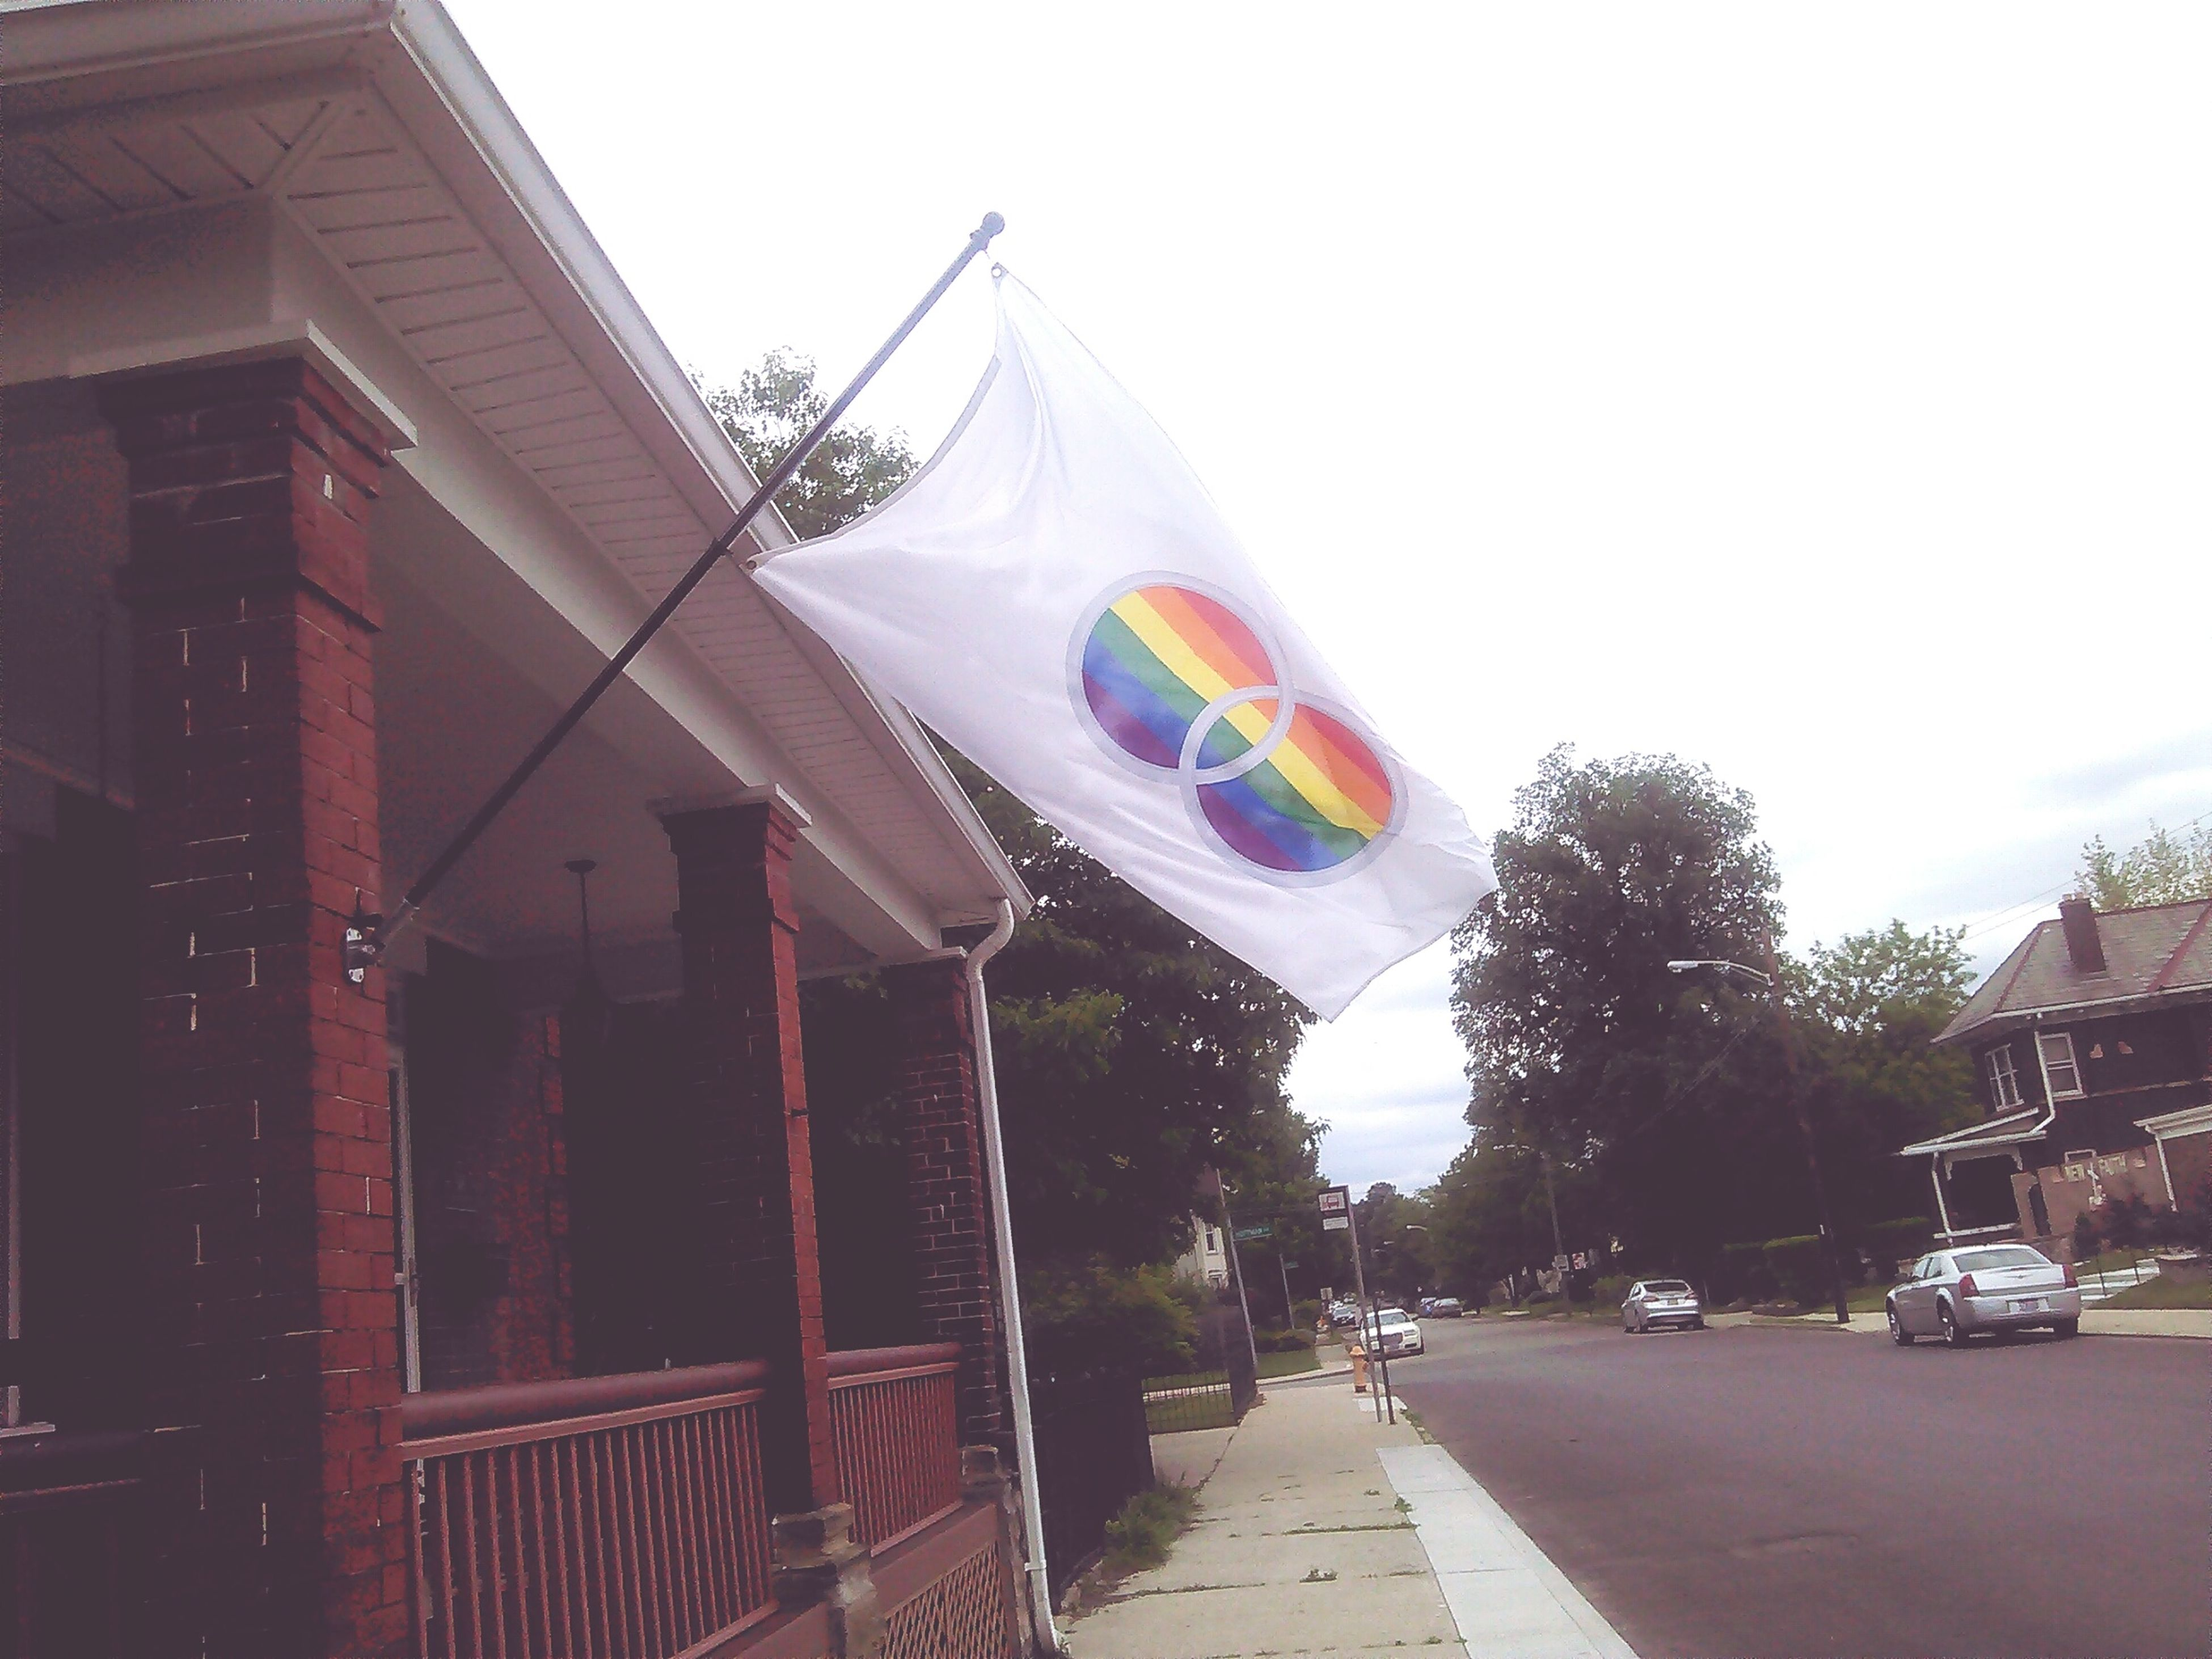 My neighbors equality flag Walking Around Soaking It All In